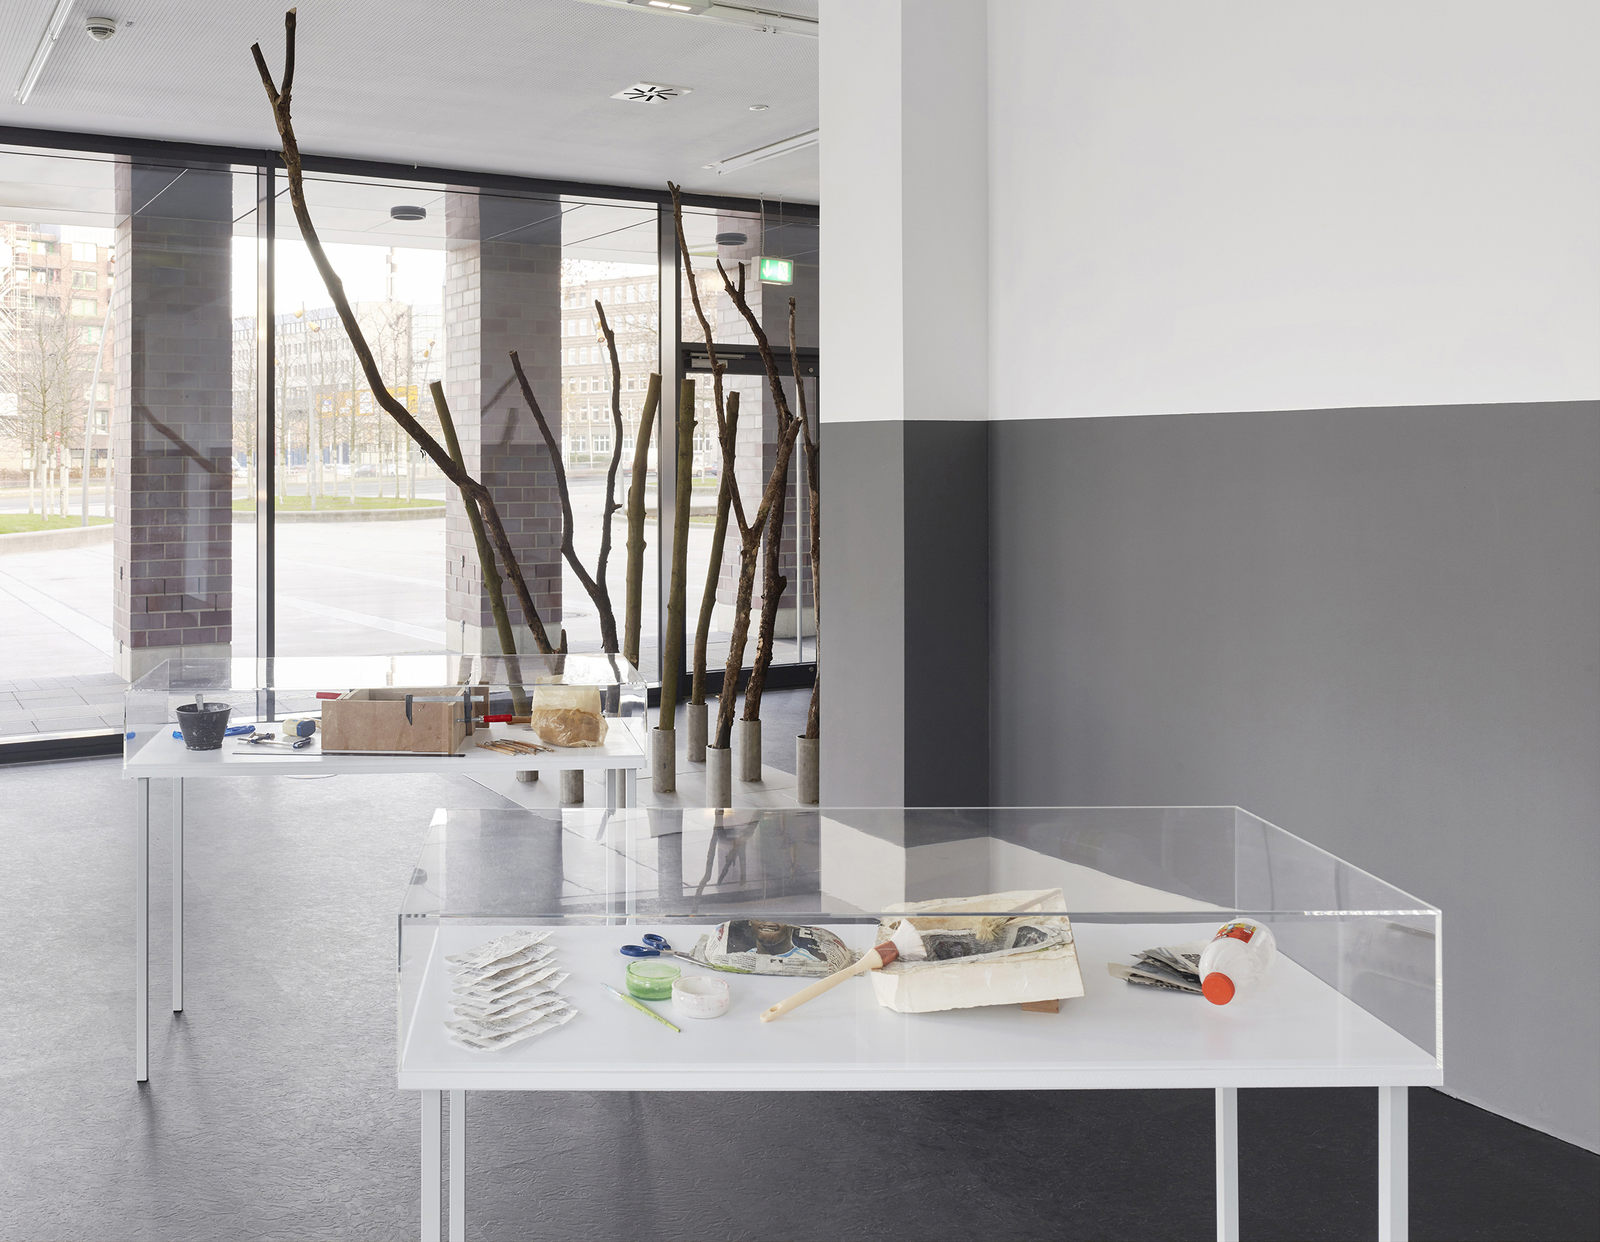 2_Shelly Nadashi NESTING BOX, Installation View_Dortmunder Kunstverein, Photo Simon Vogel